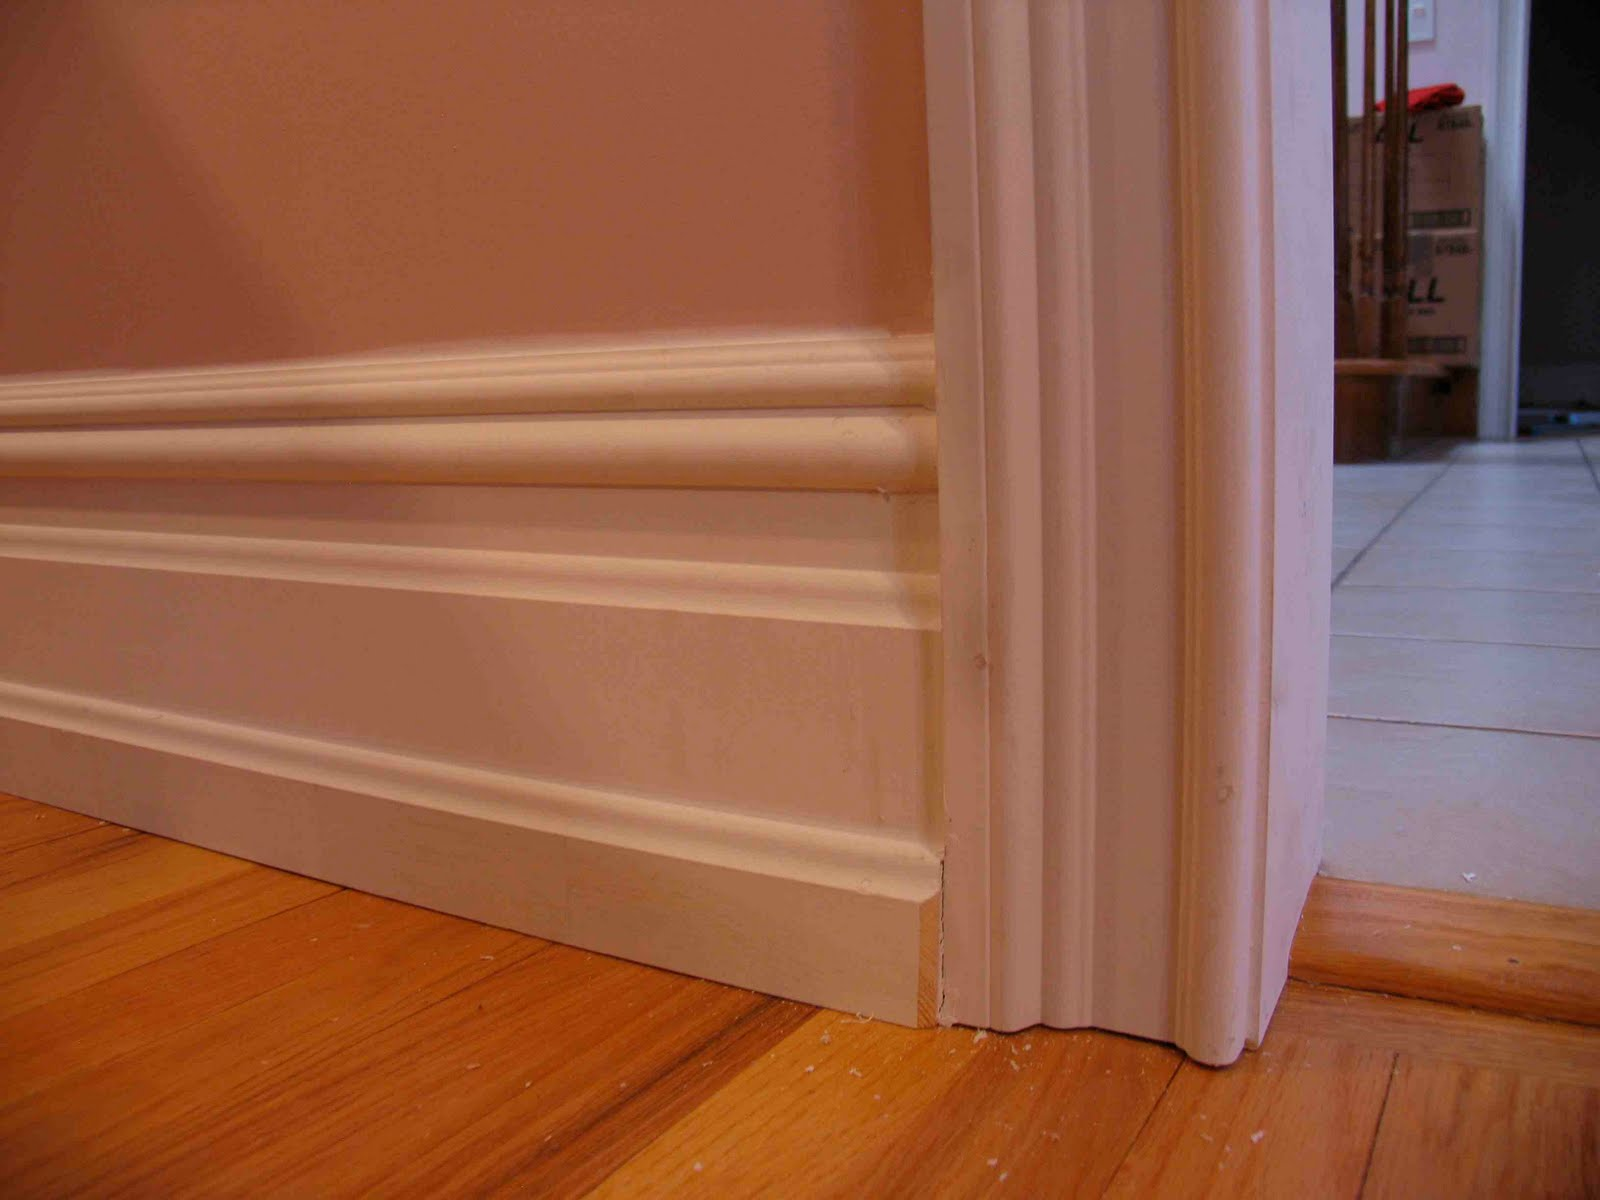 28 baseboard height aluminum baseboard stainless Baseboard height